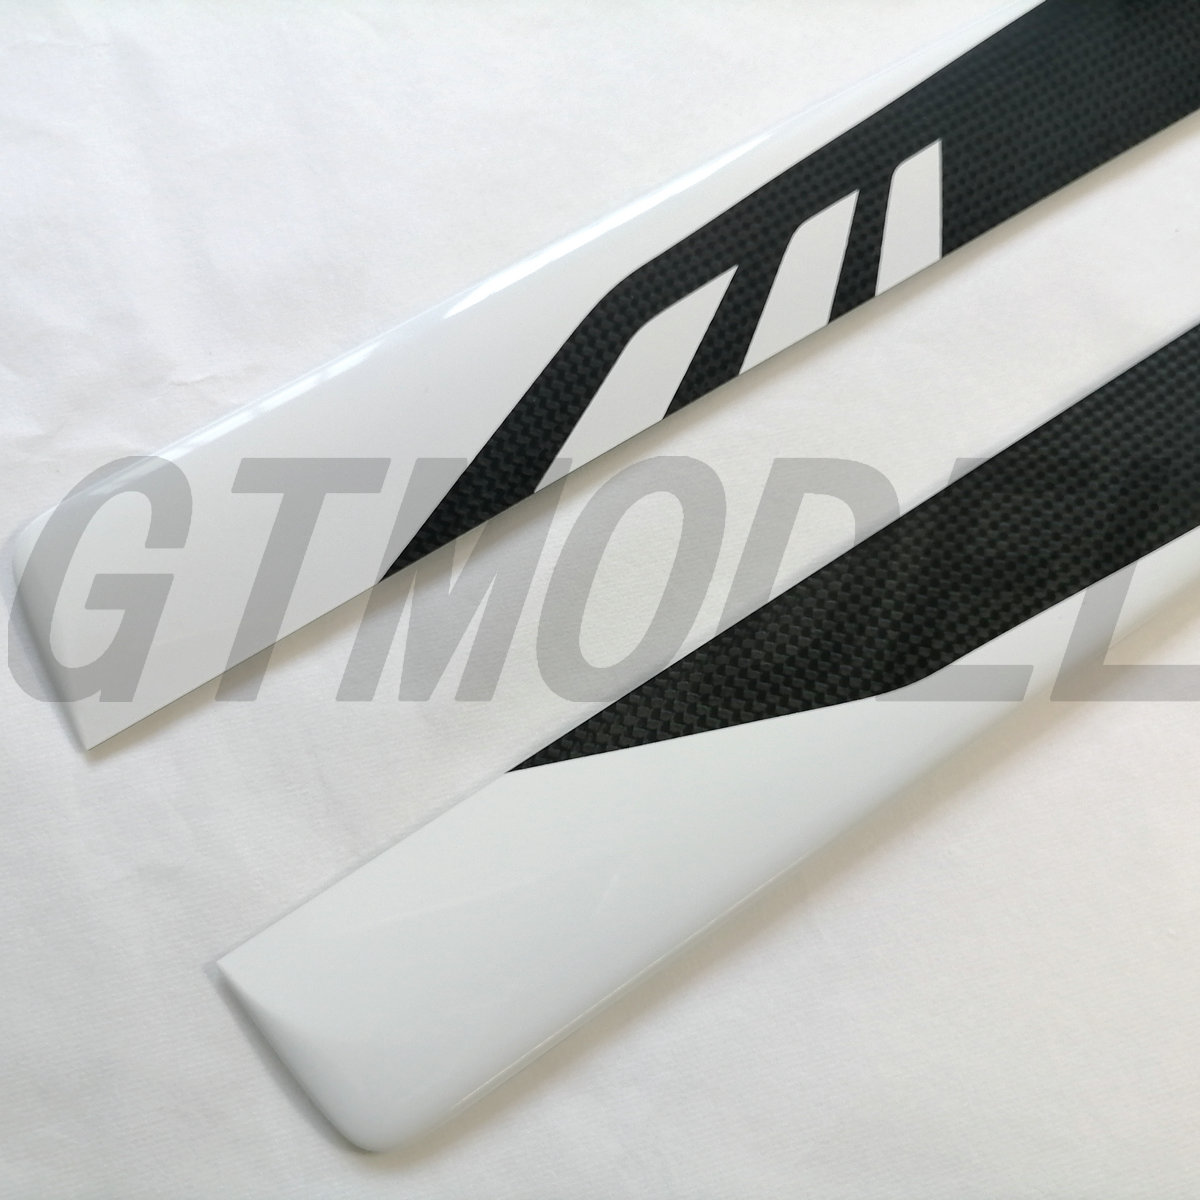 """""""Falcon"""" 690mm Main Blade Carbon Fiber Blade For T-rex 700 Gaui KDS Agile Alzrc SAB700 XLPower700 RC Helicopter enlarge"""